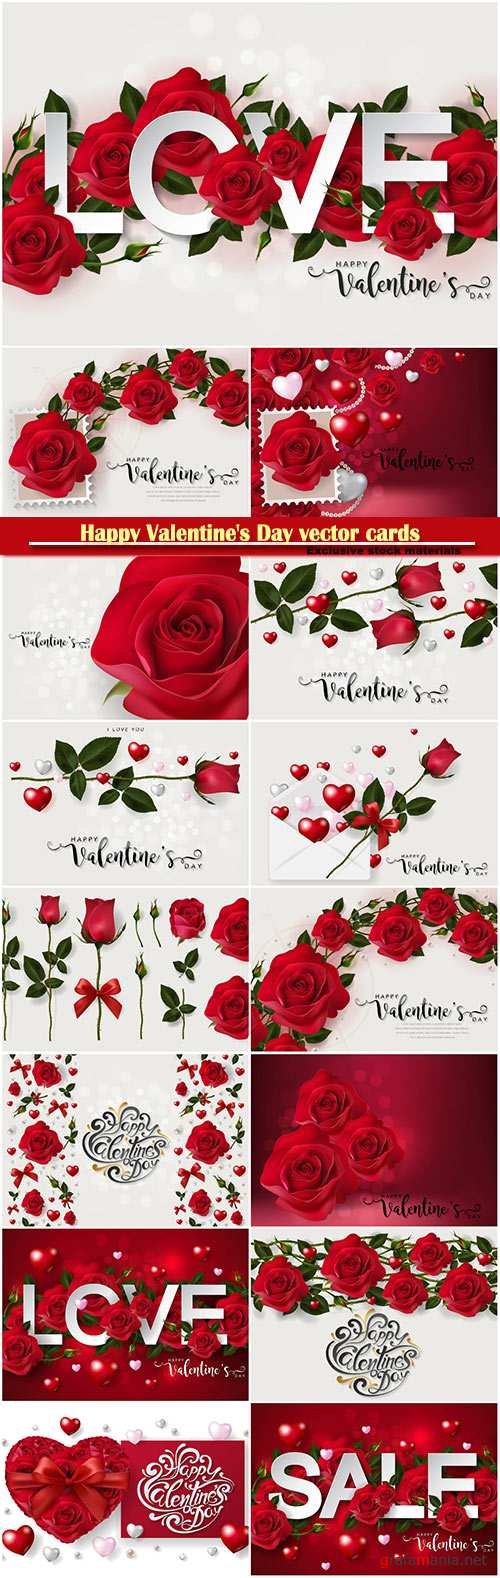 Happy Valentine's Day vector cards, red roses and hearts, romantic backgrounds